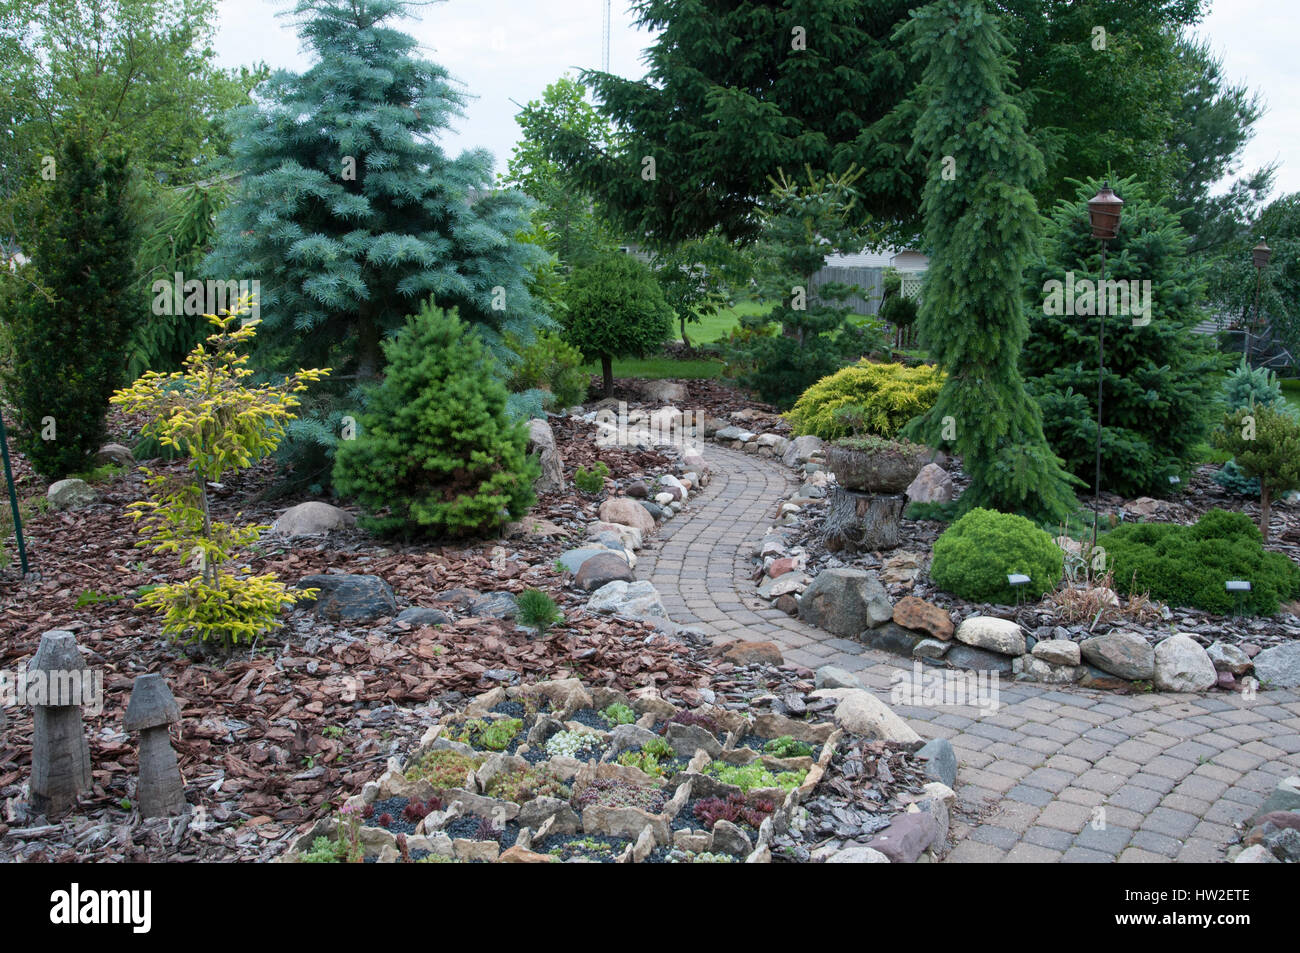 Conifer Garden - Stock Image